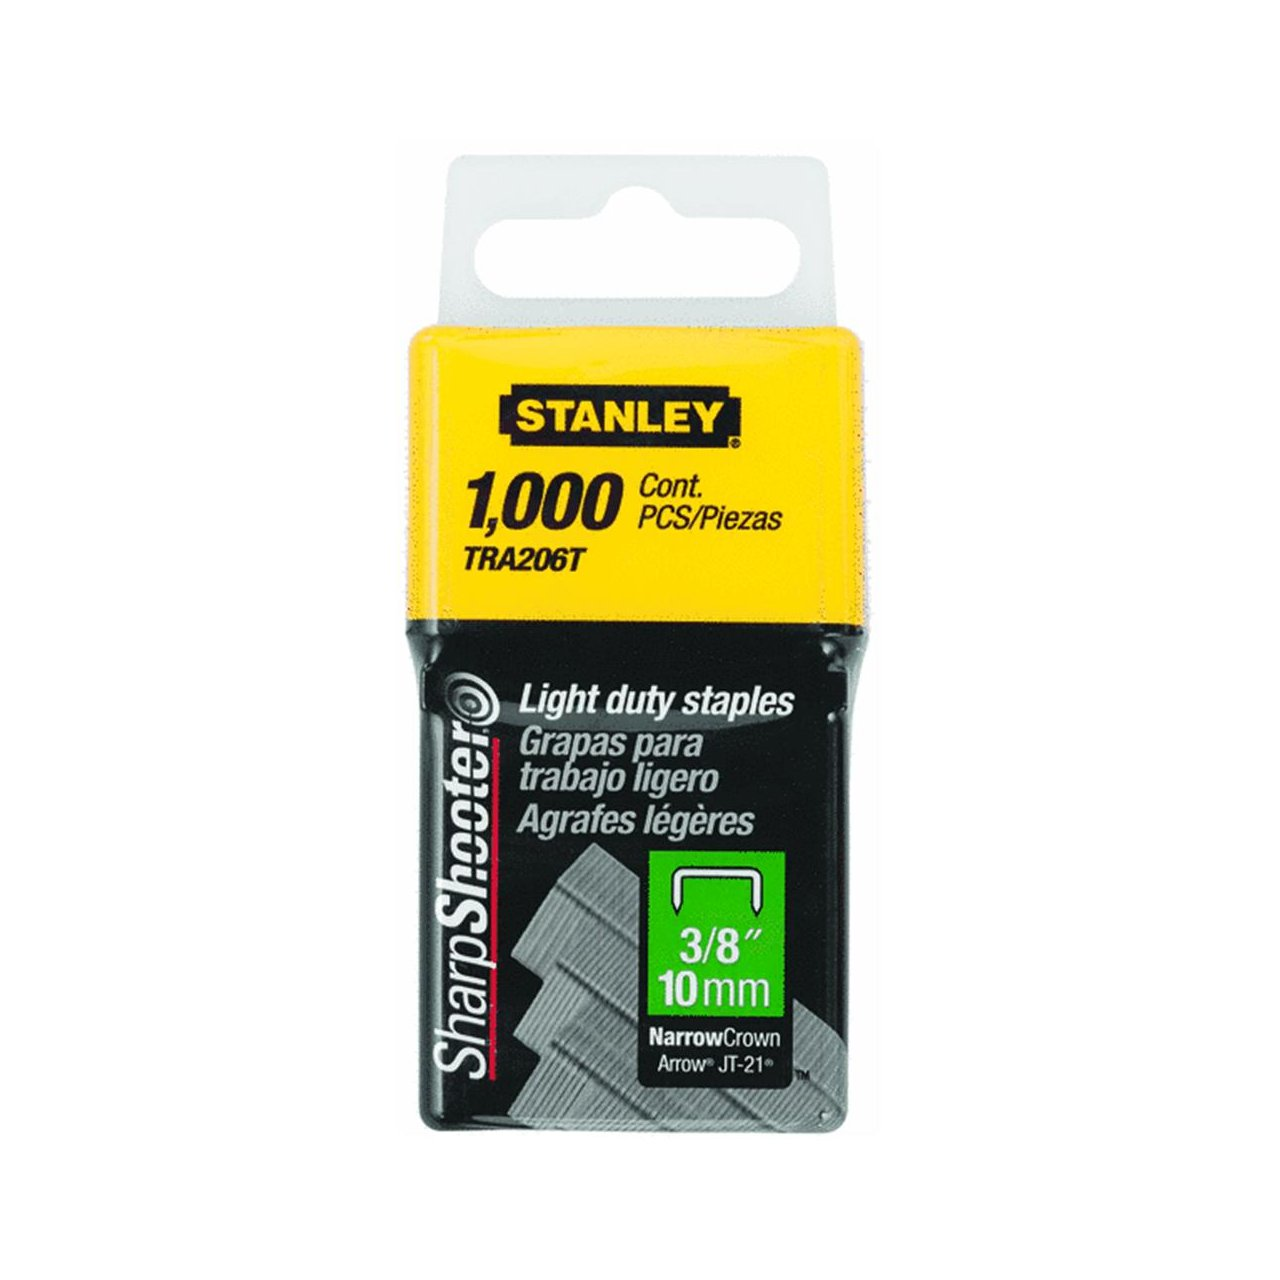 Stanley Tra206T 3//8 Inch Light Duty Staples 2 pack Pack of 1000